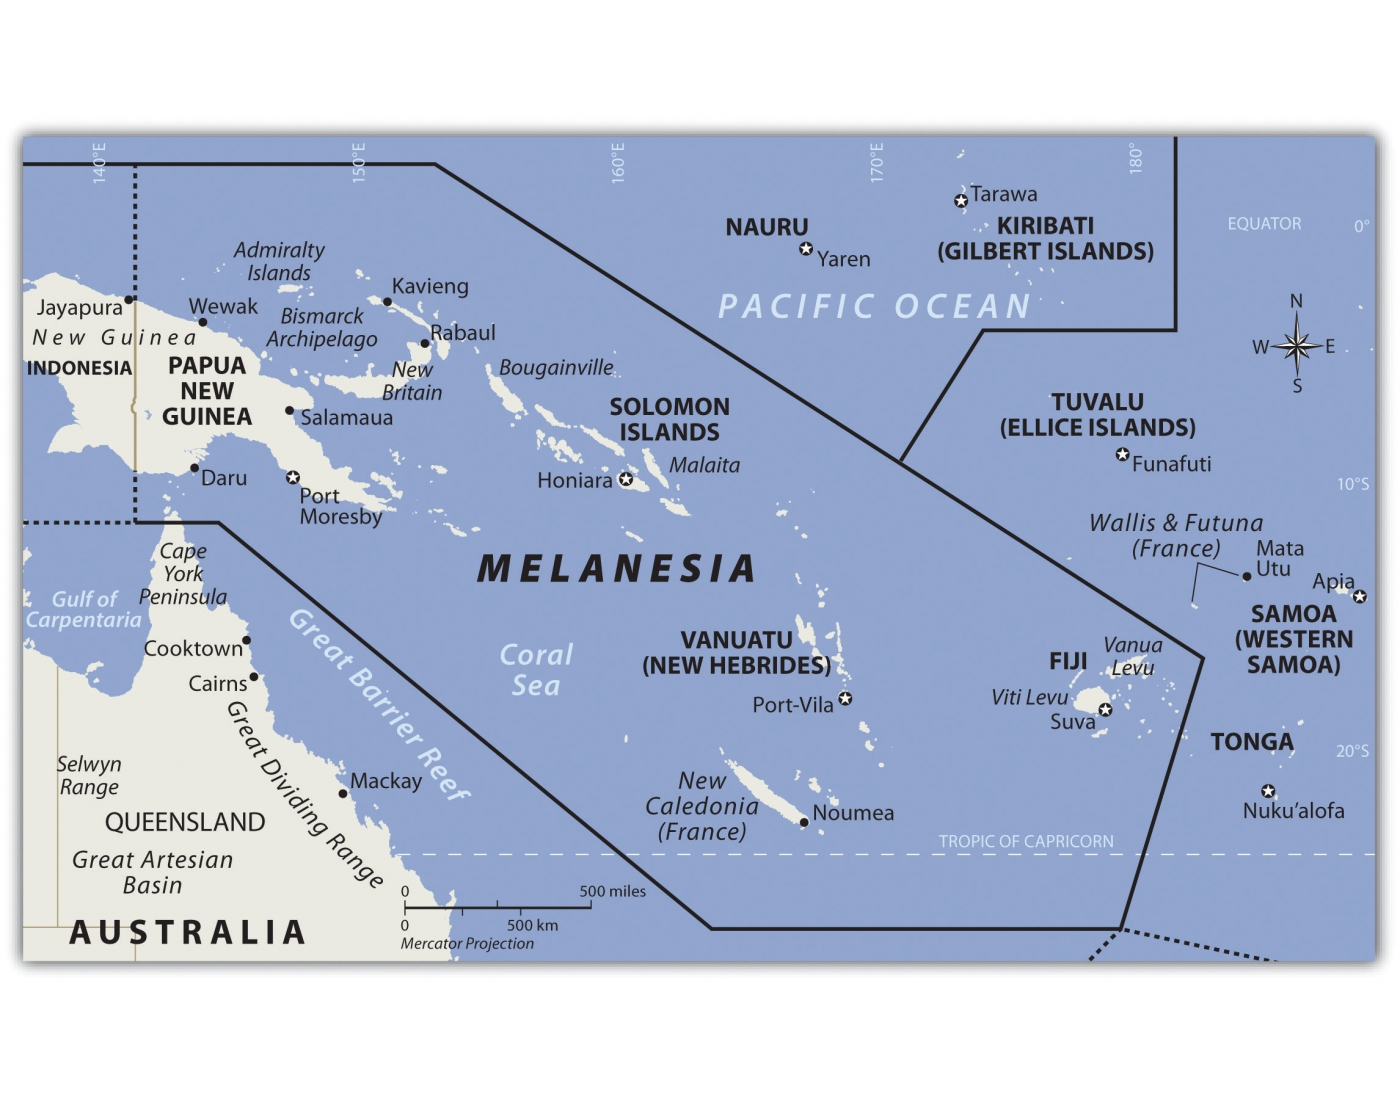 Capitals of Melanesia